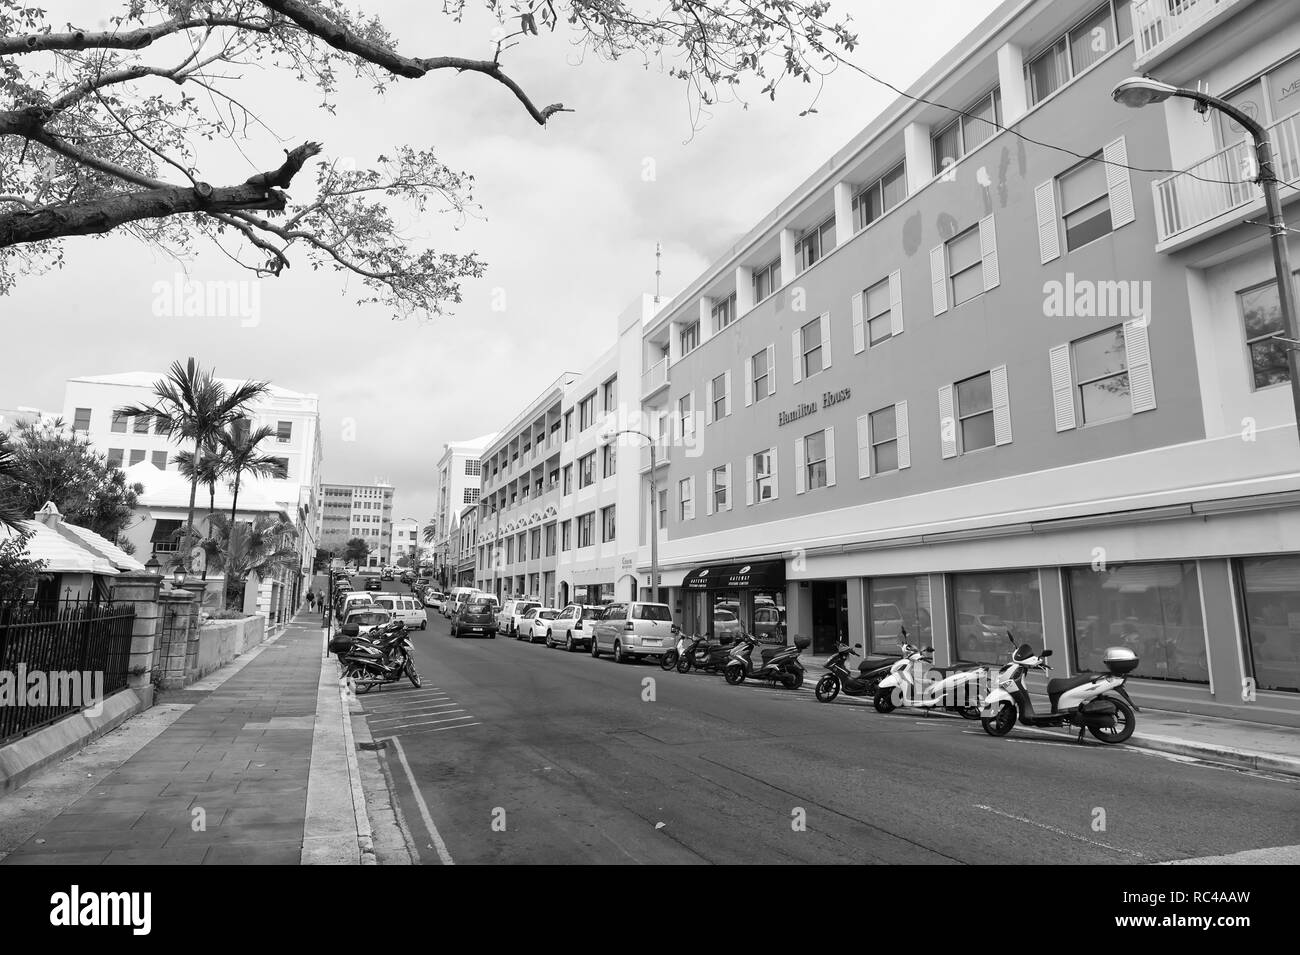 Hamilton, Bermuda - March, 20, 2016: street road. City street road. Cars and scooters parked along side of street road. Urban life. Traffic of city or street road. - Stock Image